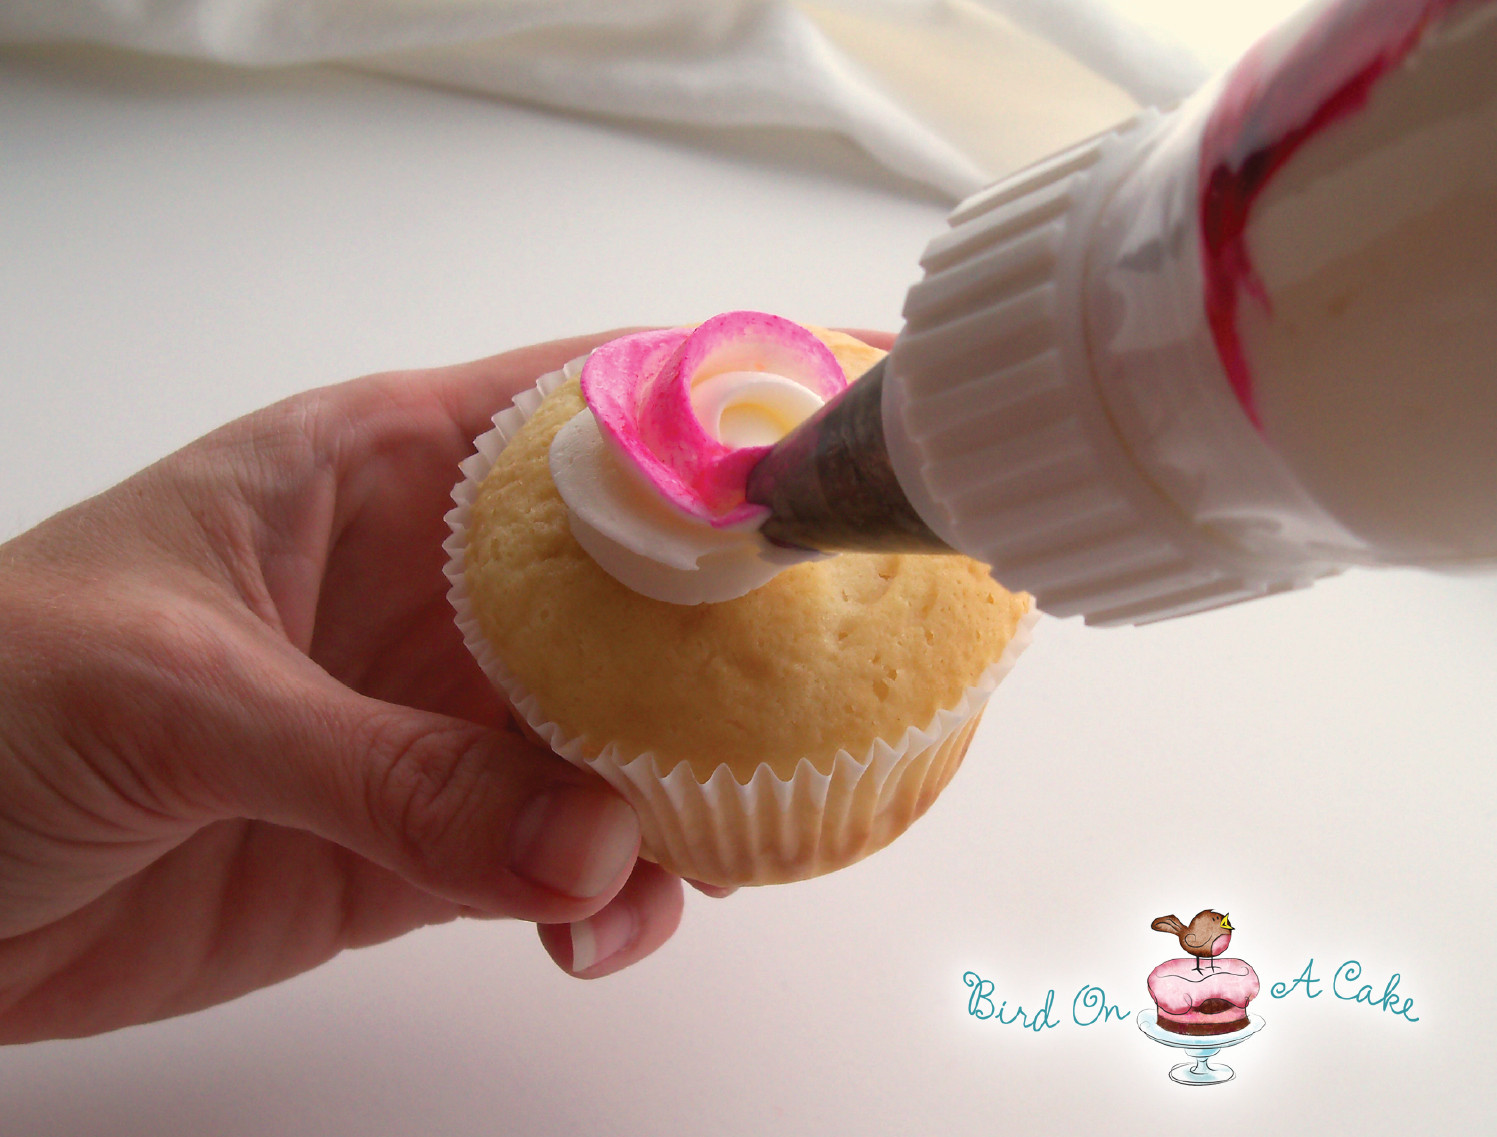 How To Make Icings For Cupcakes  Bird A Cake Perfectly Packaged Rose Cupcakes